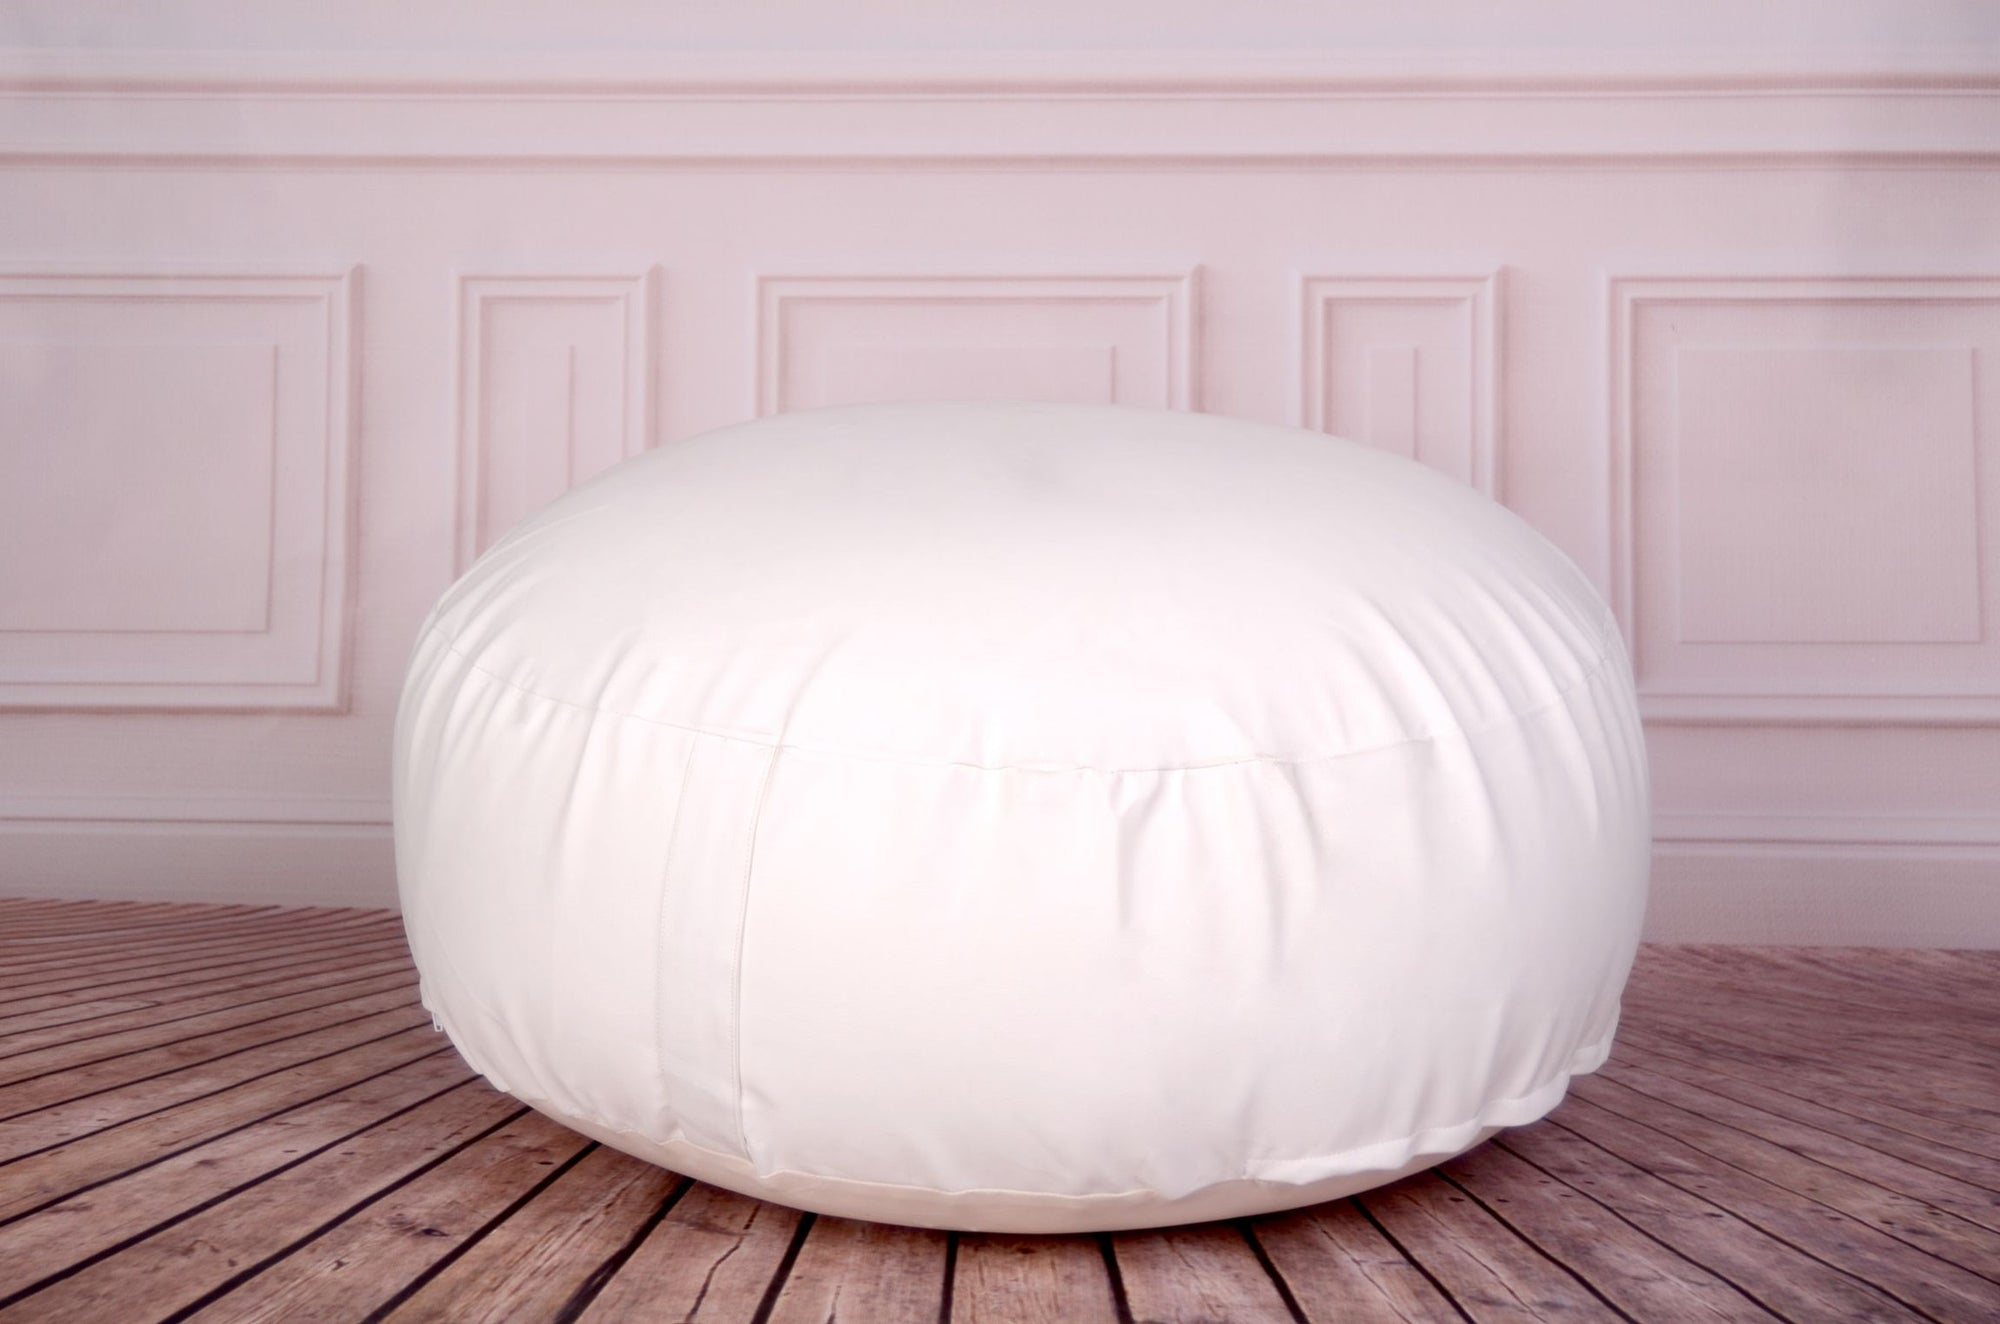 Posing Bean Bag for Newborn Photography 33in. diameter (unfilled)-Newborn Photography Props